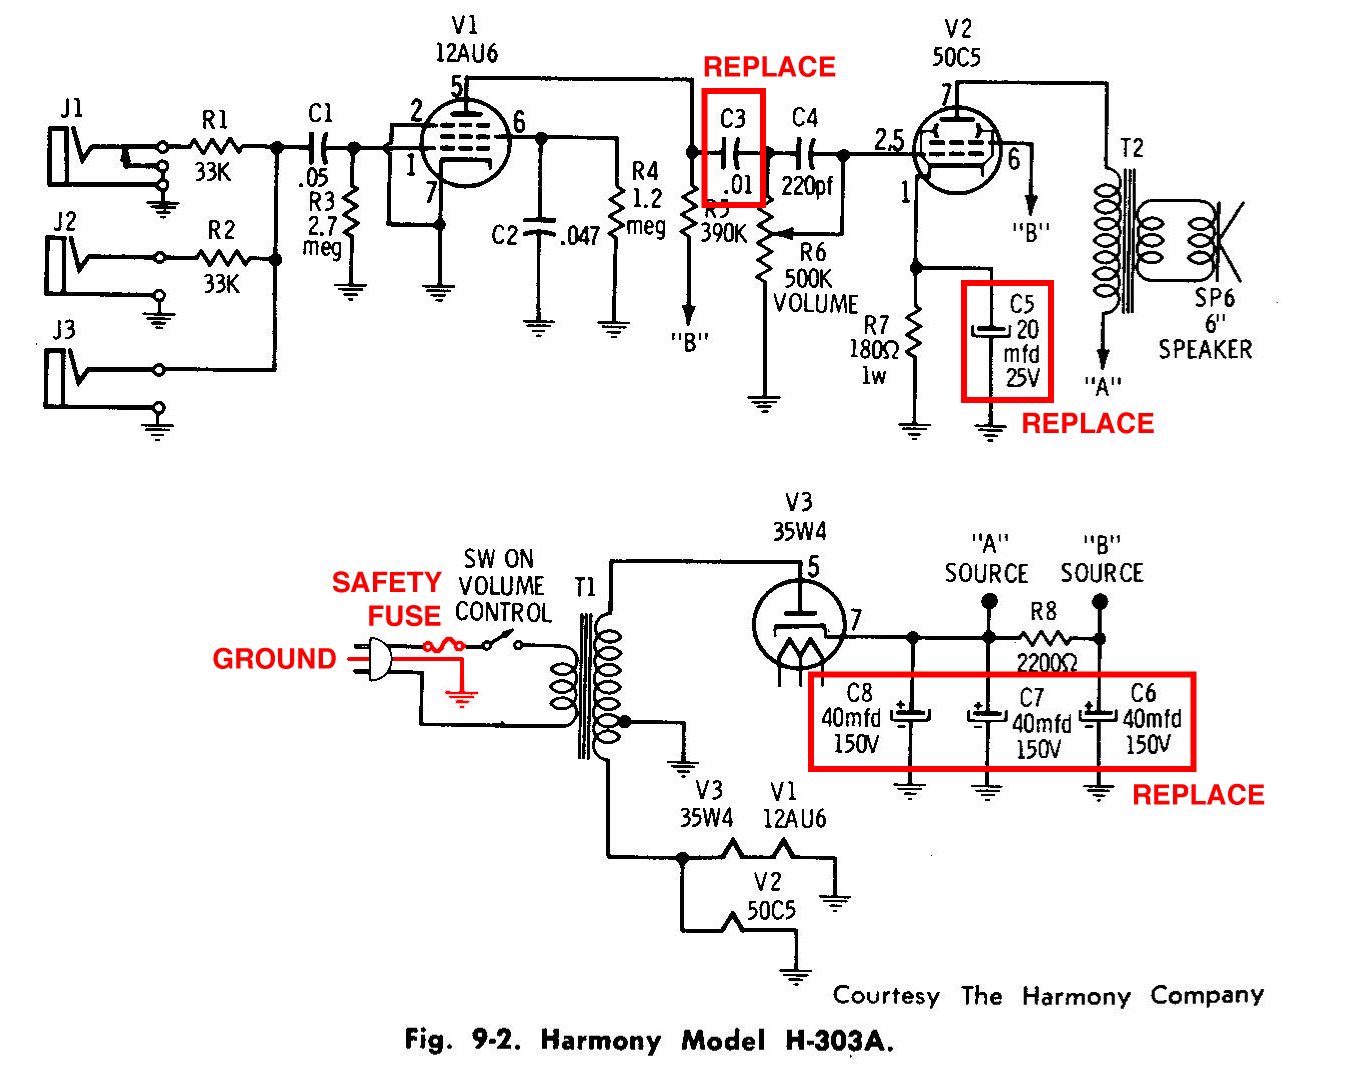 harmony h303a amplifier schematic rebuilding a vintage tube amplifier slackpropagation High-End Tube Amp Schematics at alyssarenee.co